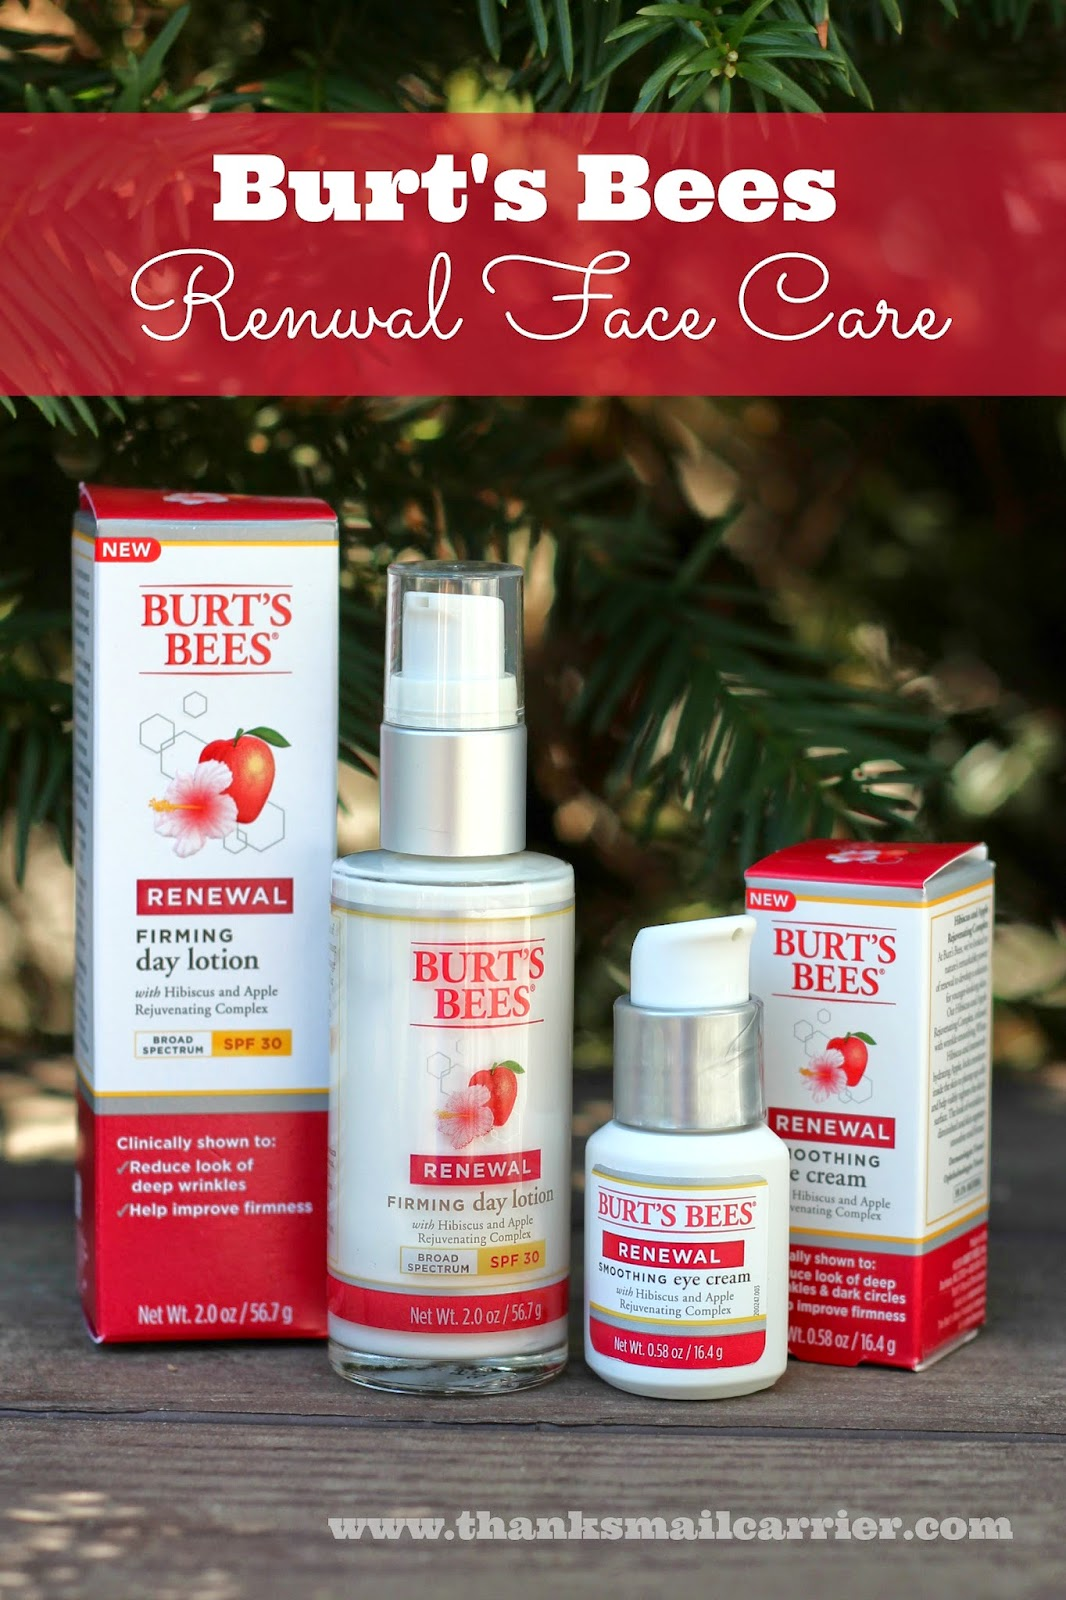 Burt's Bees Renewal review